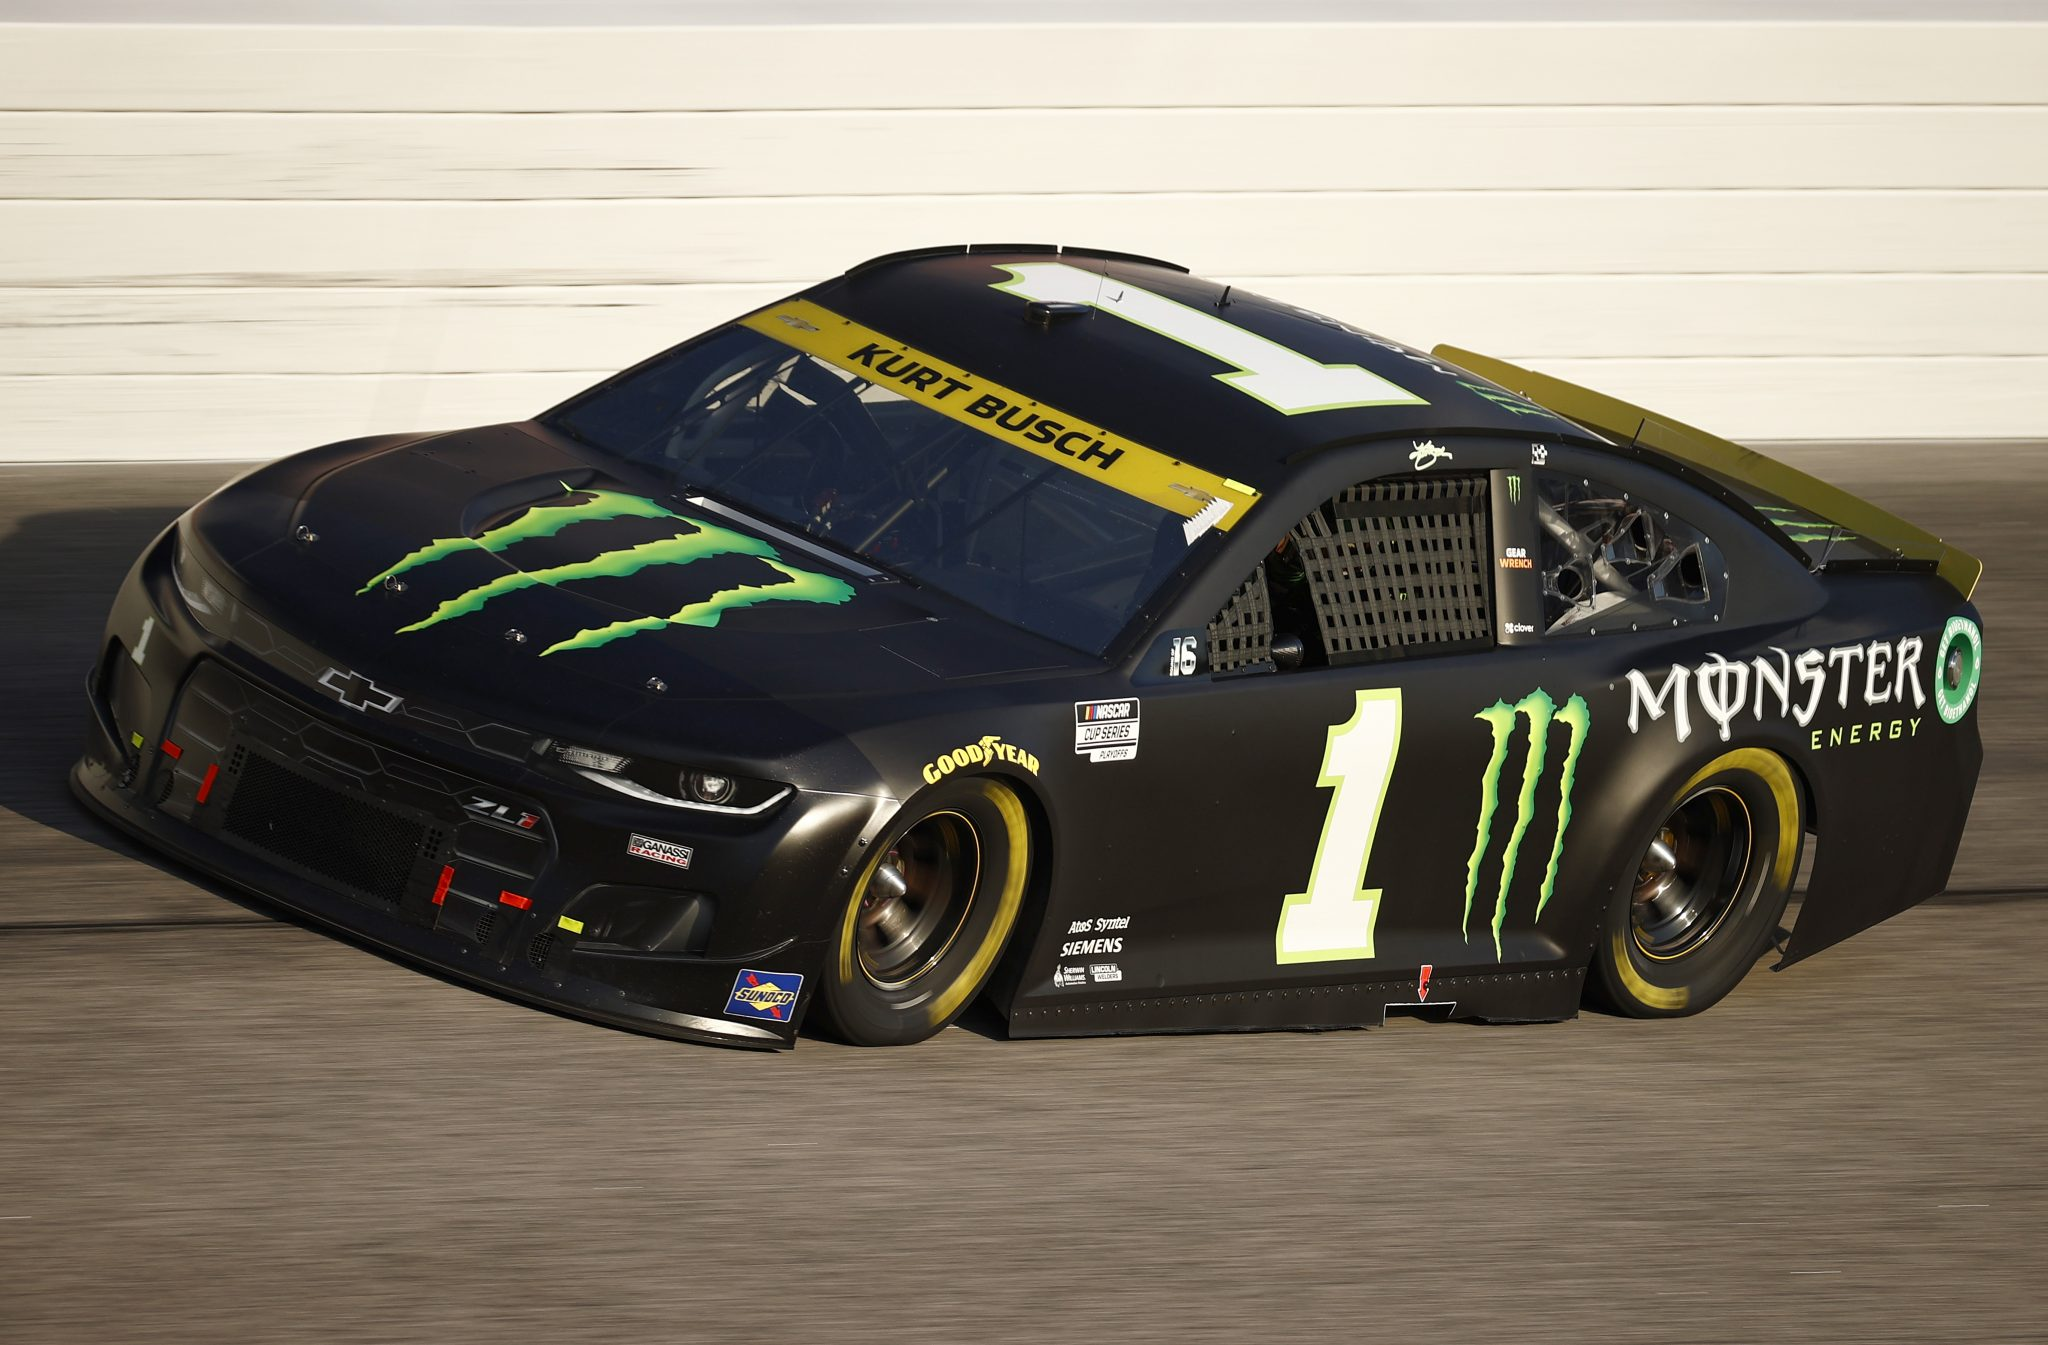 DARLINGTON, SOUTH CAROLINA - SEPTEMBER 05: Kurt Busch, driver of the #1 Monster Energy Chevrolet, drives during the NASCAR Cup Series Cook Out Southern 500 at Darlington Raceway on September 05, 2021 in Darlington, South Carolina. (Photo by Jared C. Tilton/Getty Images) | Getty Images